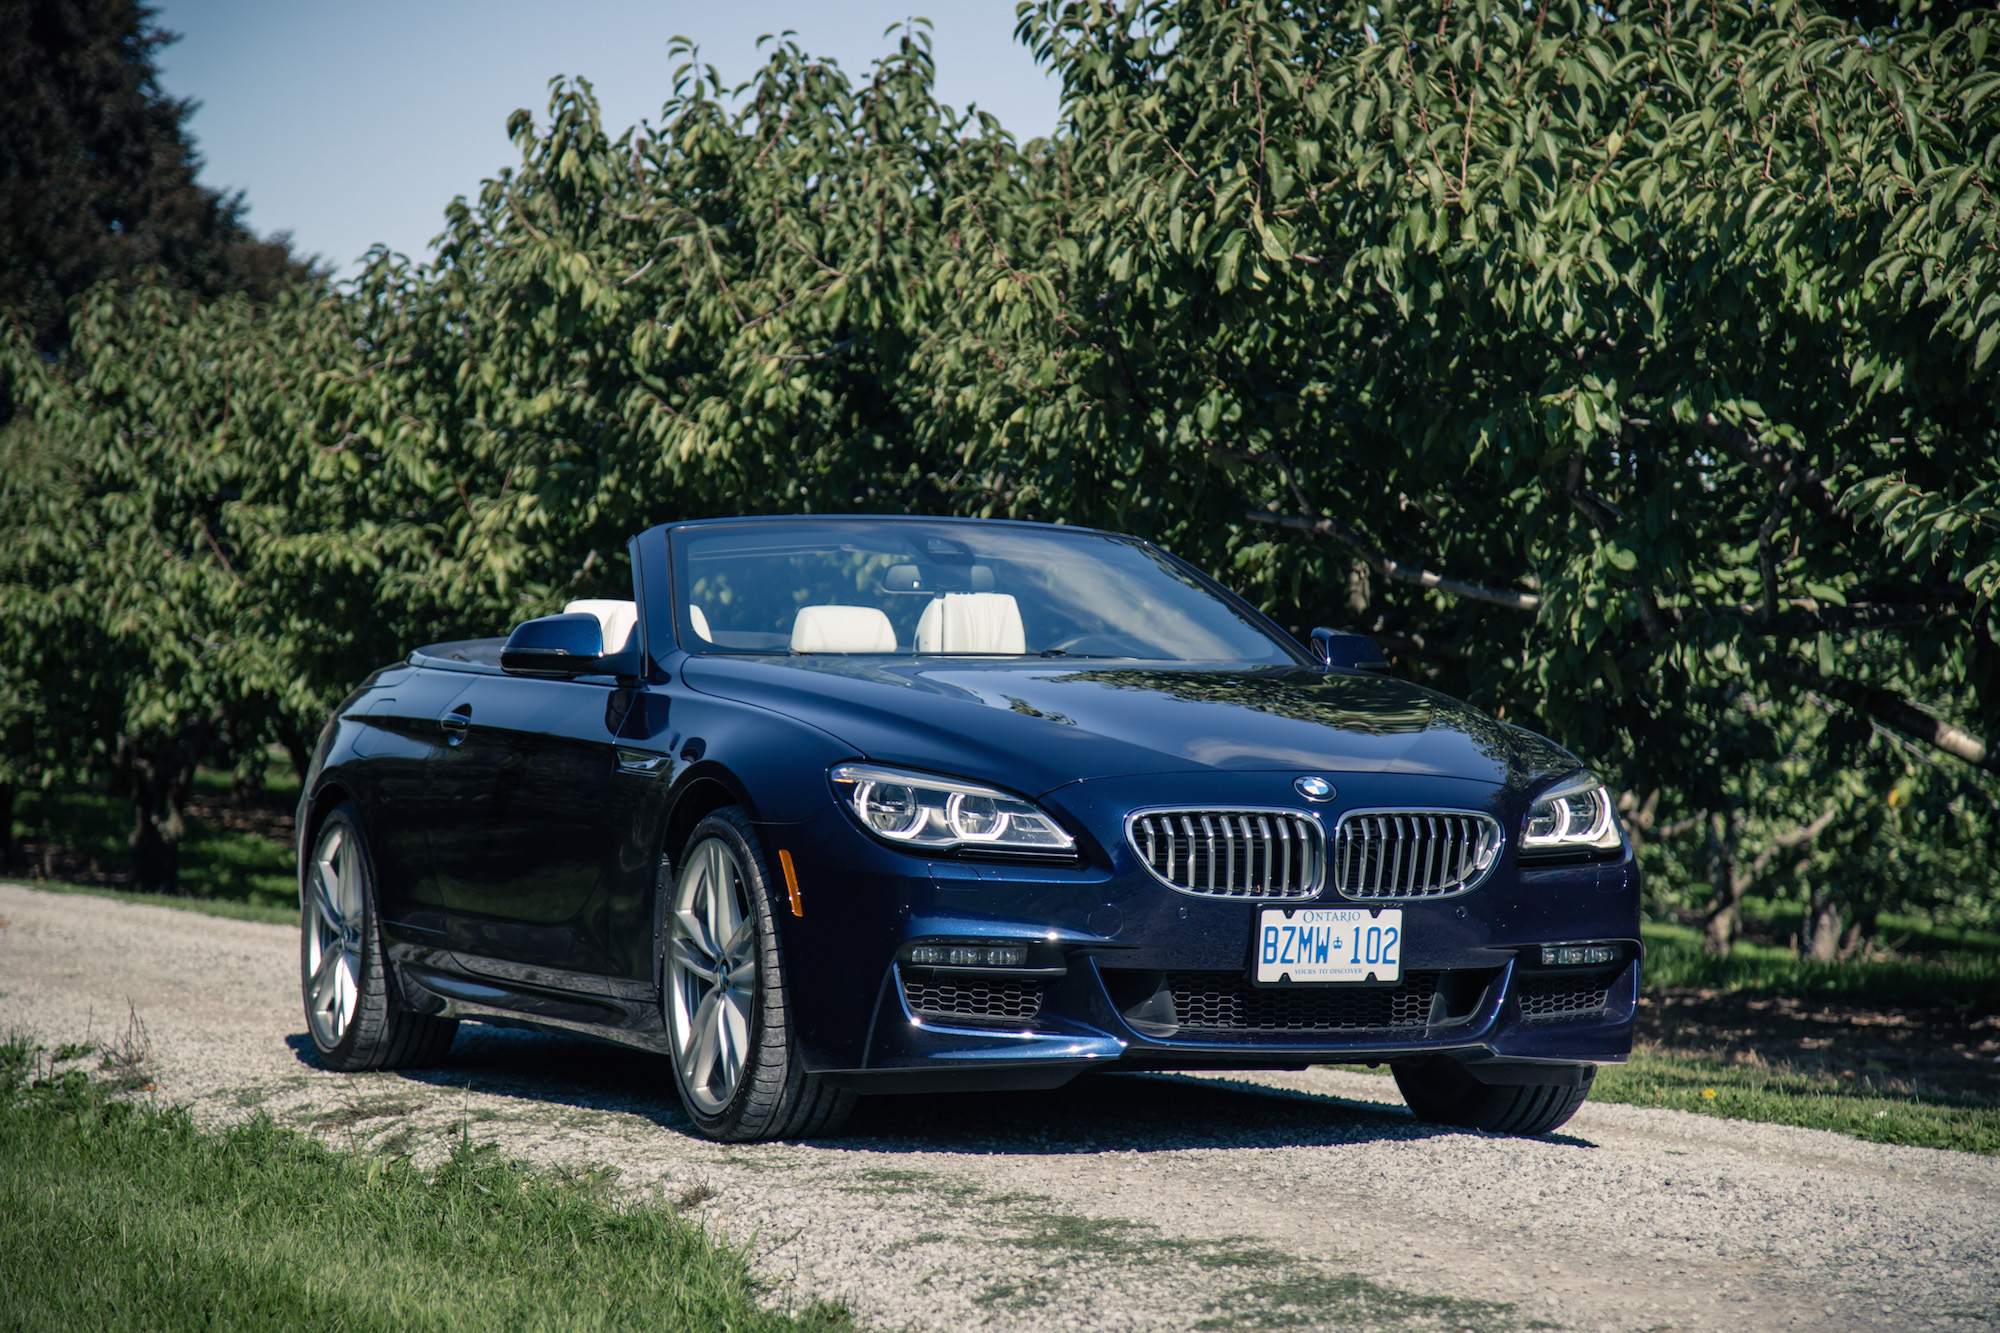 Bmw Series Twin Turbo V additionally Bmw I V Bmw Csi  parison likewise Frozen Purple Bmw Series Coupe Does Photo Shoot In Scrapyard Photo Gallery also Bmw I together with I Cabriolet Fs. on bmw 650i car